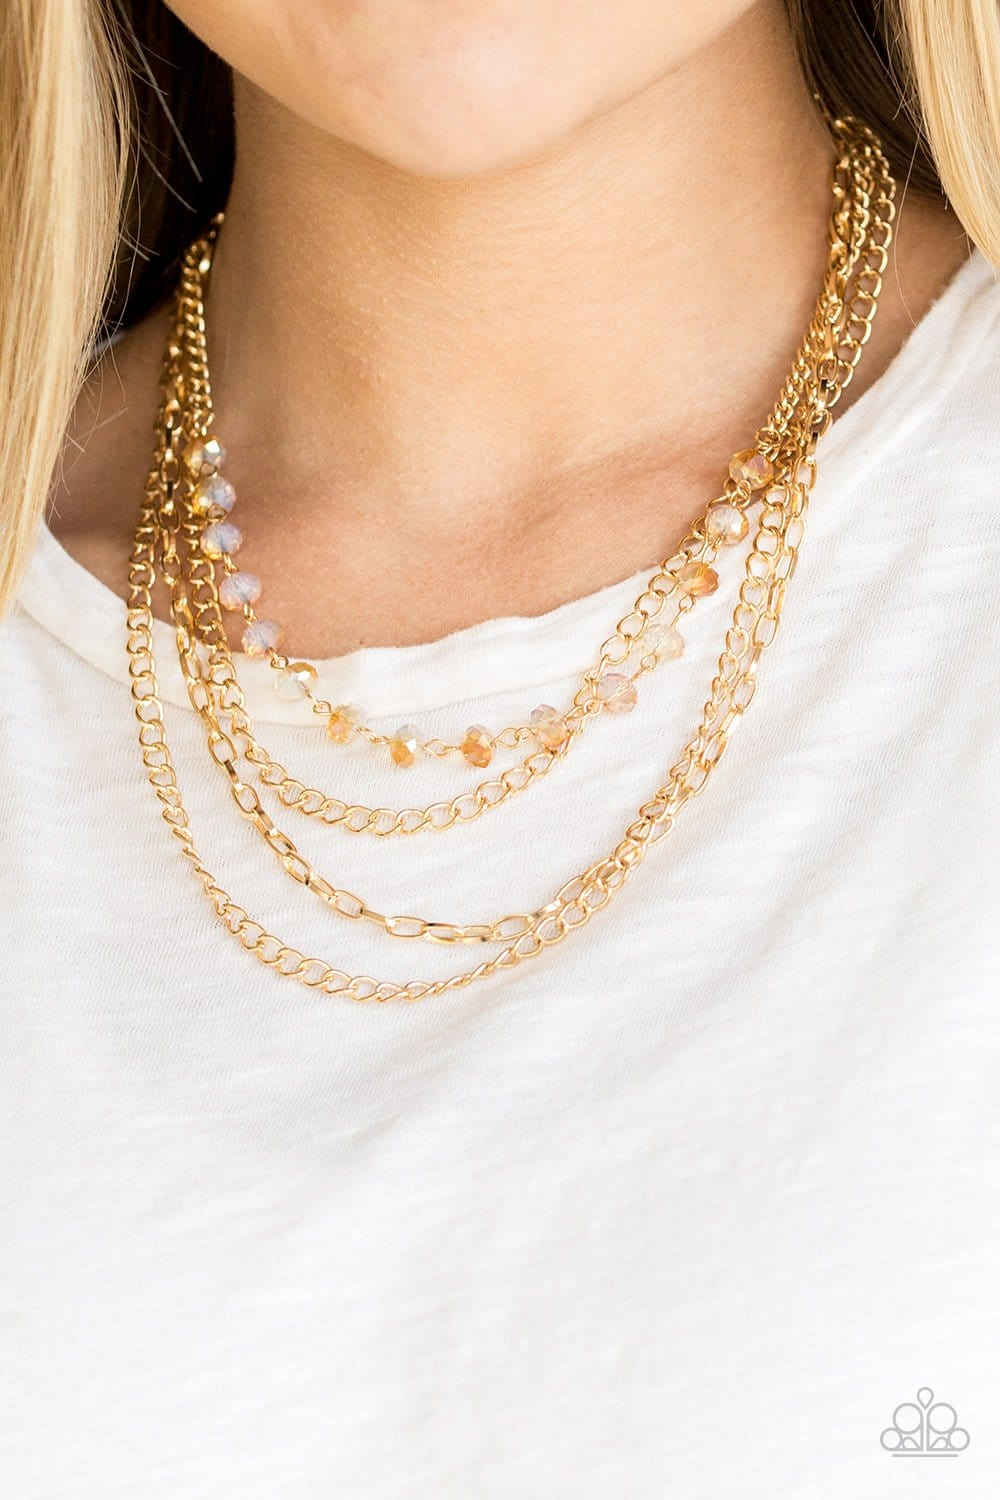 Extravagant Elegance - Gold - Jewels N' Thingz Boutique